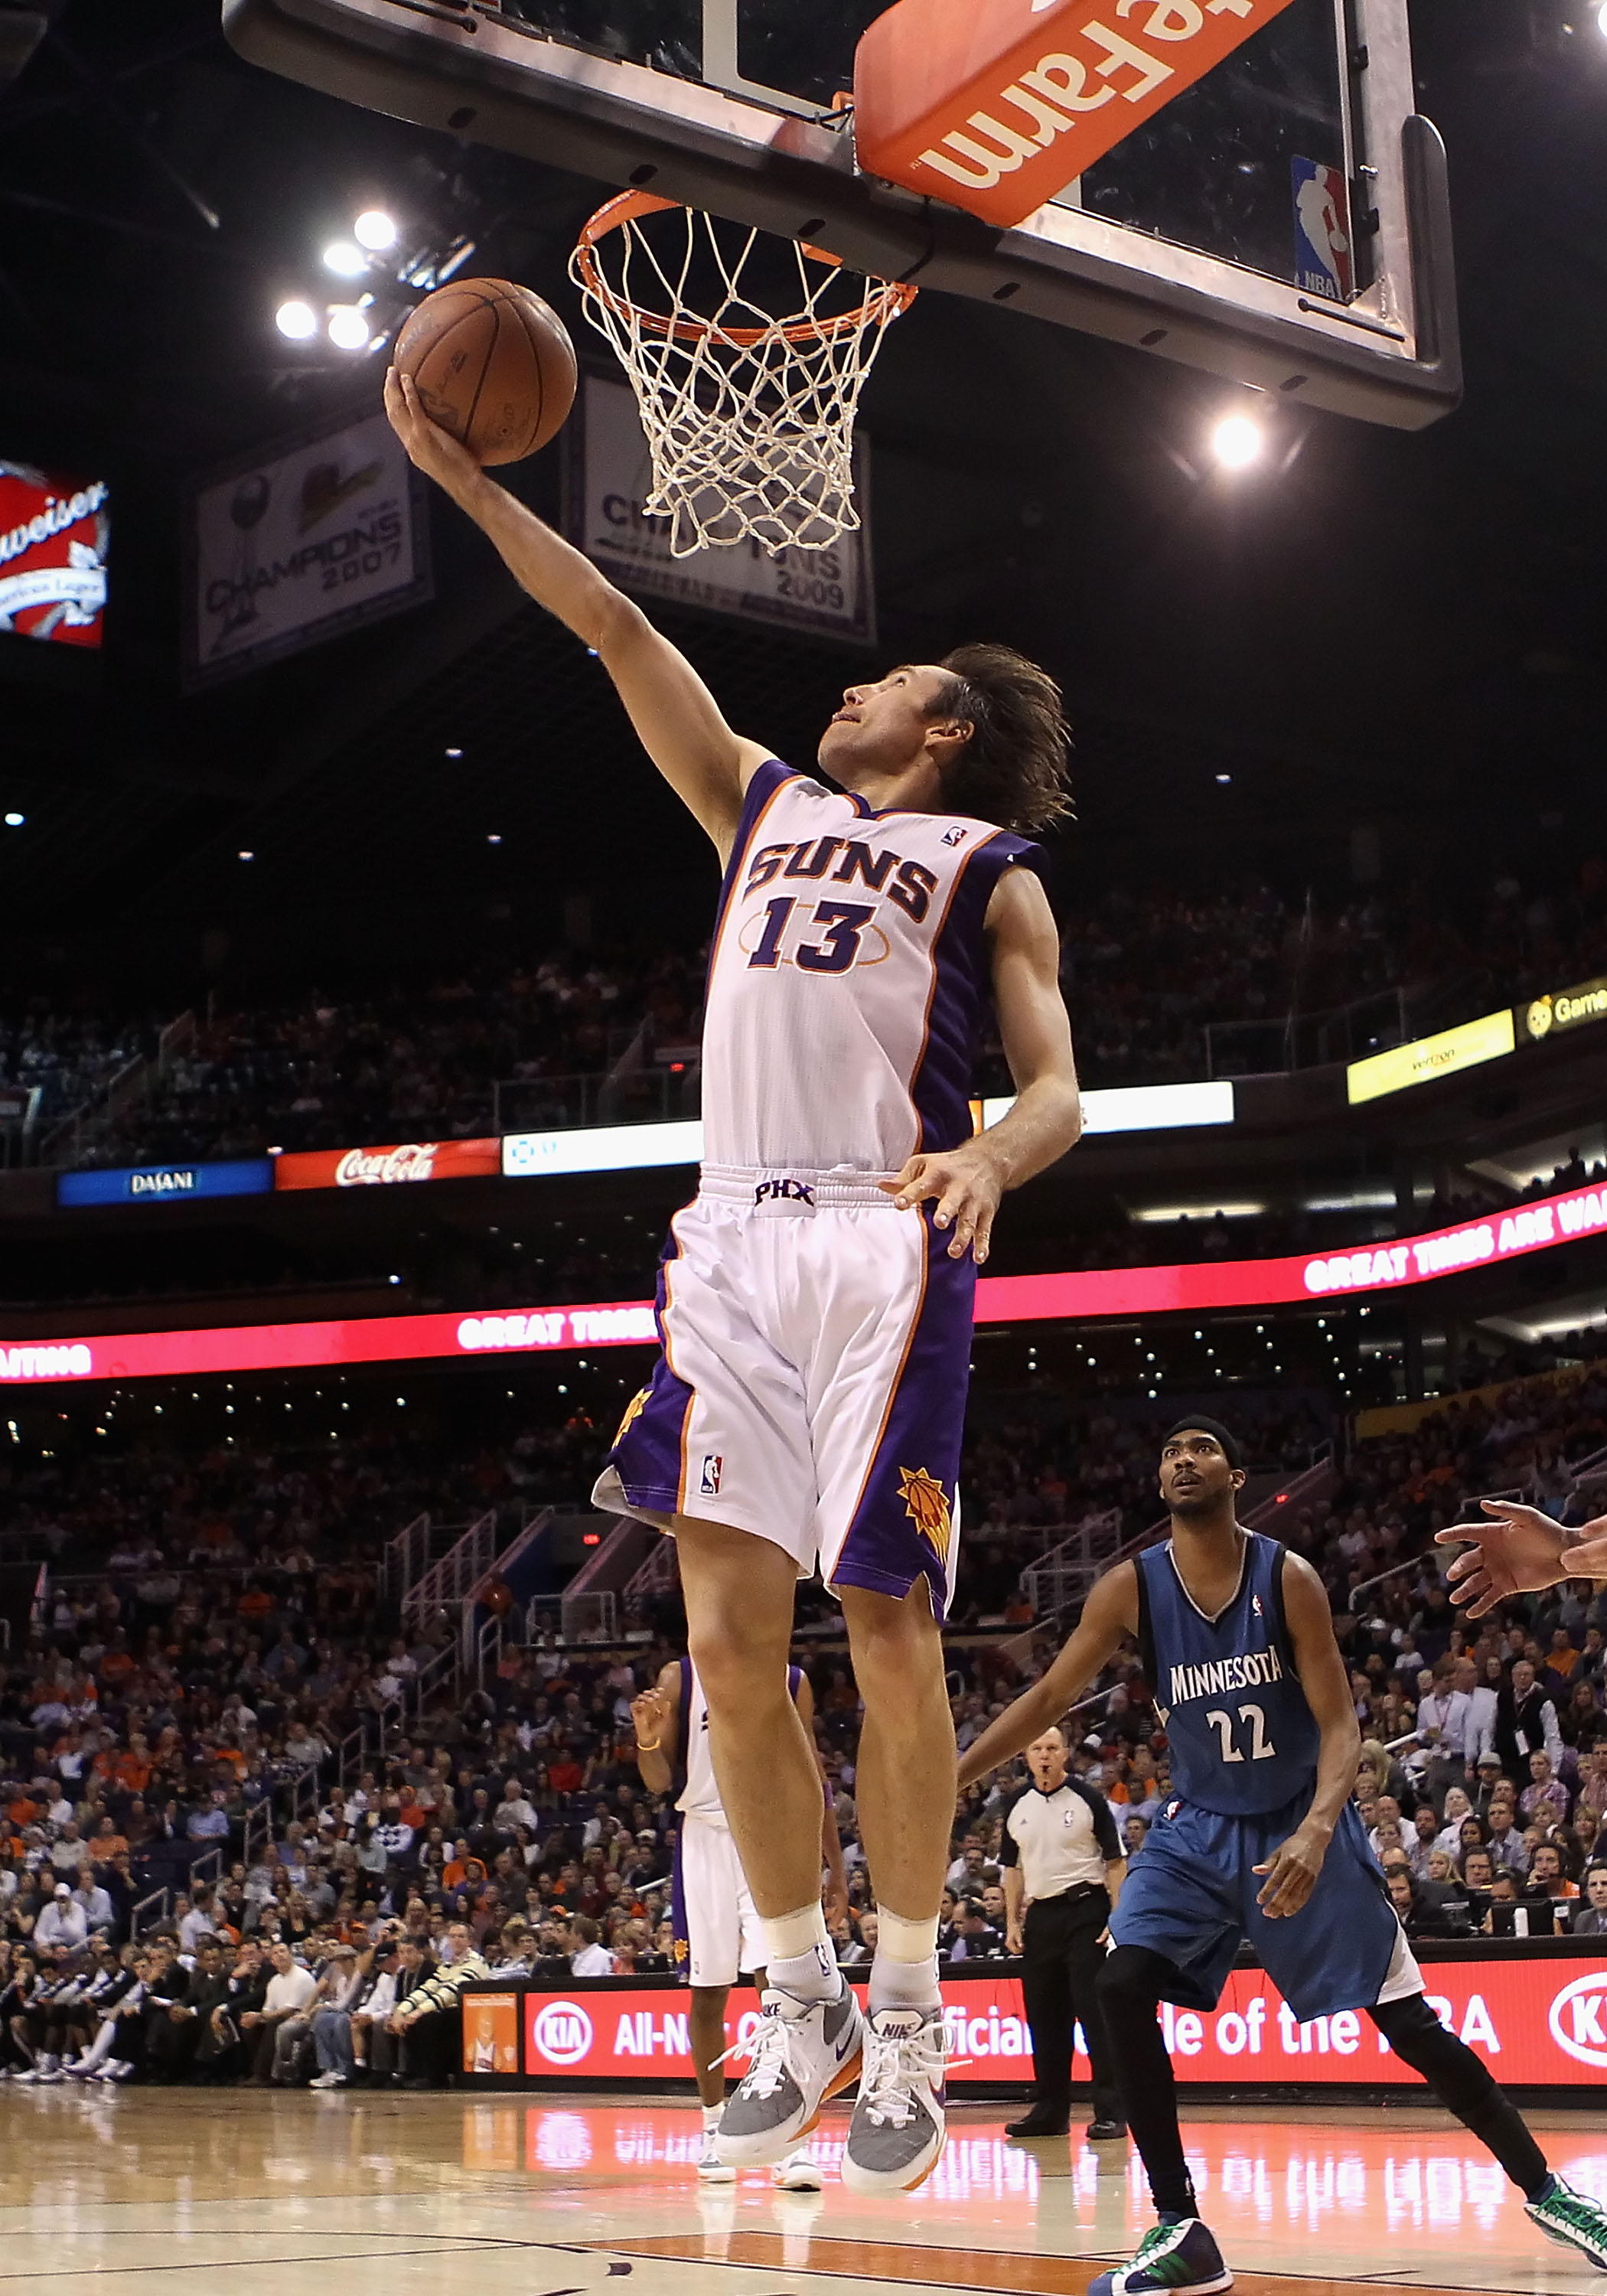 PHOENIX - DECEMBER 15:  Steve Nash #13 of the Phoenix Suns lays up a shot against the Minnesota Timberwolves during the NBA game at US Airways Center on December 15, 2010 in Phoenix, Arizona.  The Suns defeated the Timberwolves 128-122.  NOTE TO USER: Use